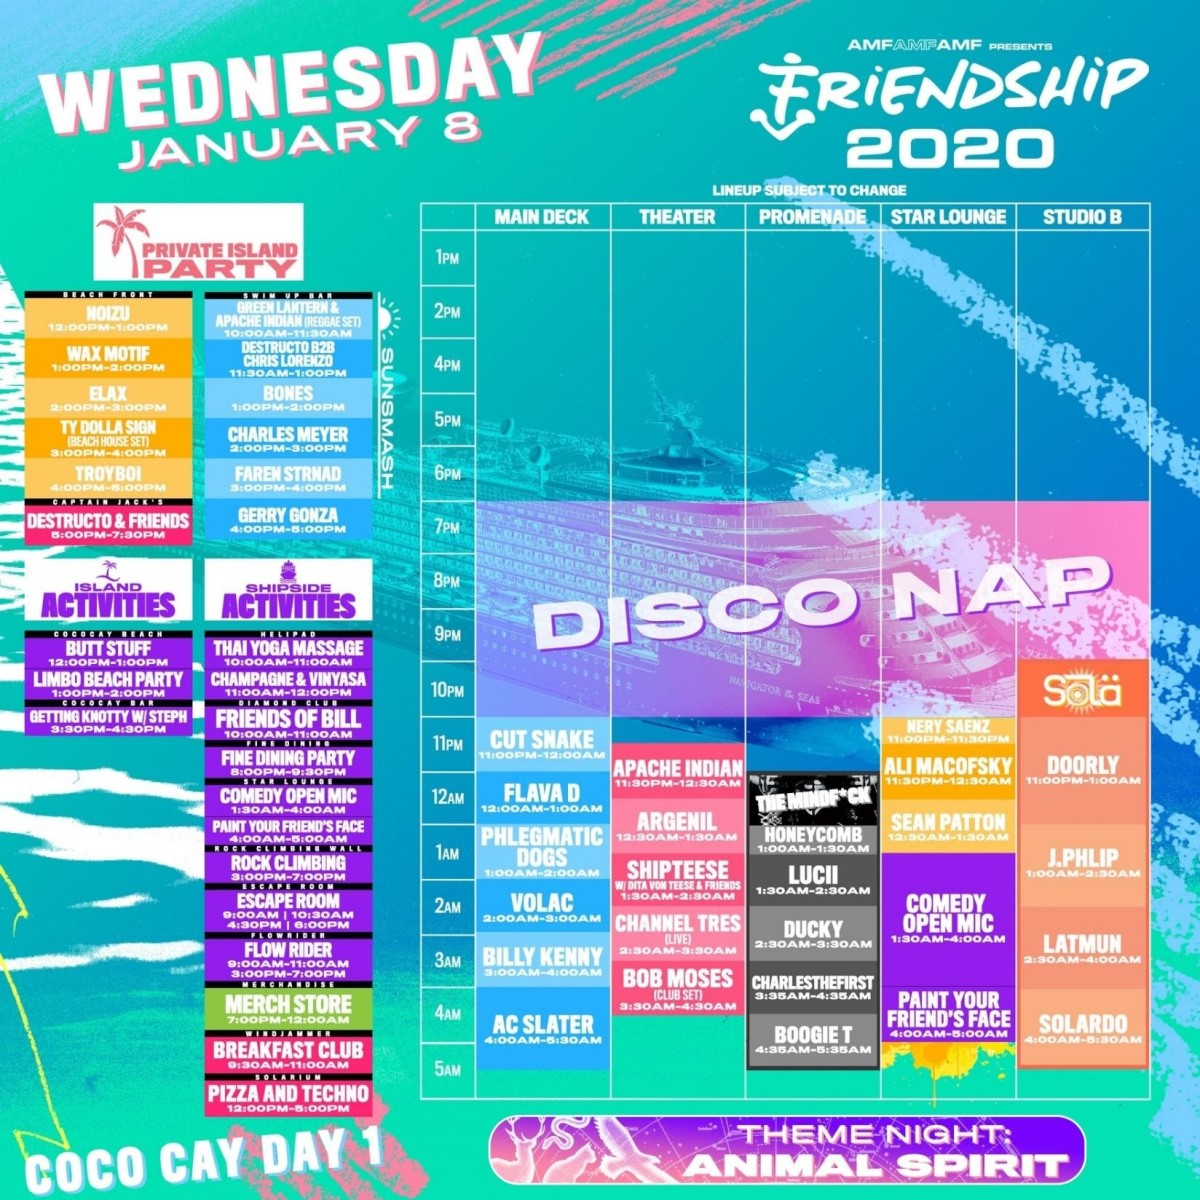 FriendShip 2020 Lineup by Day Wednesday